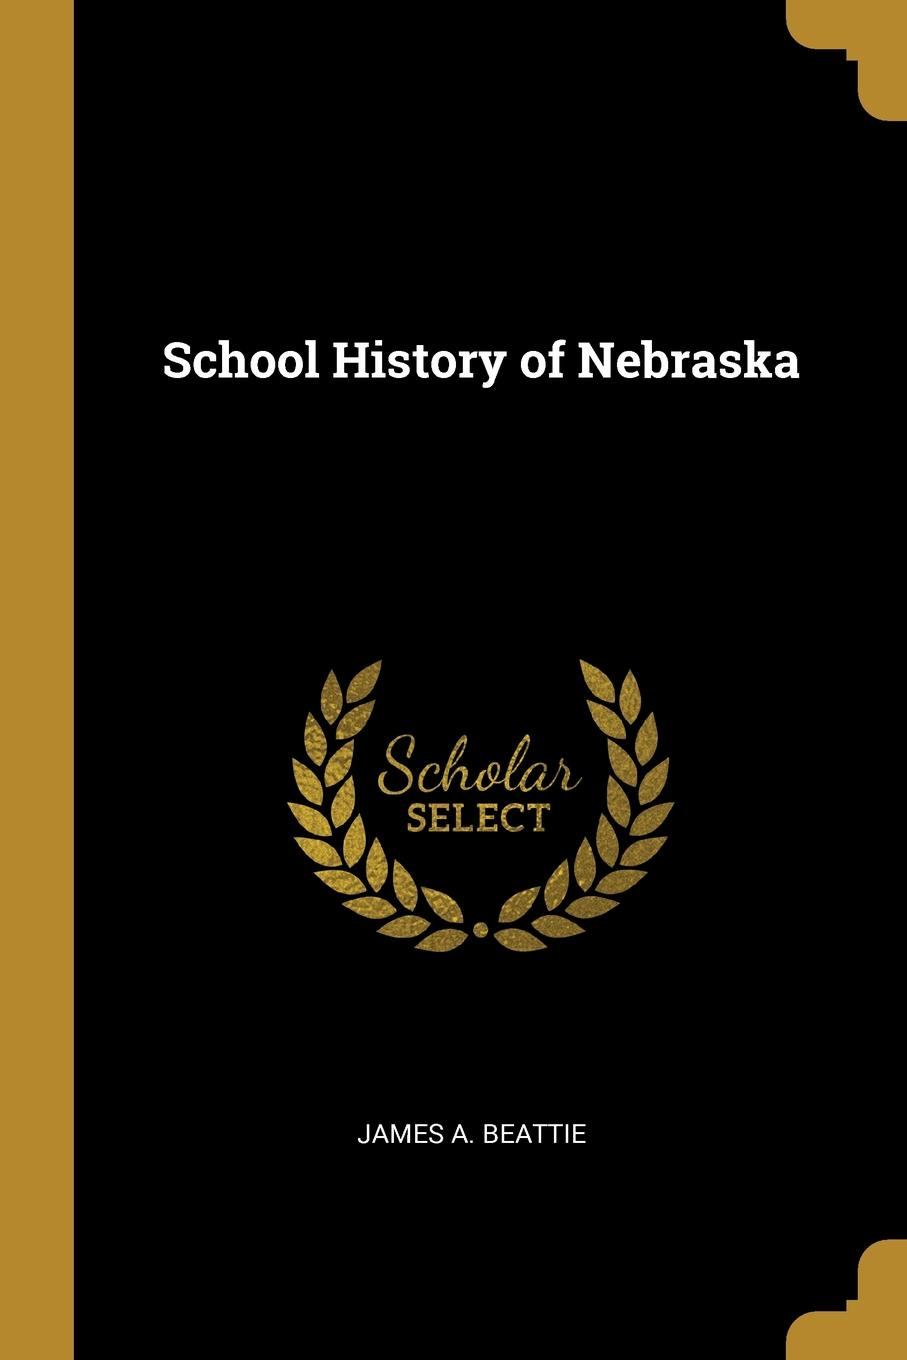 James A. Beattie School History of Nebraska rice alfred ernest an oregon girl a tale of american life in the new west